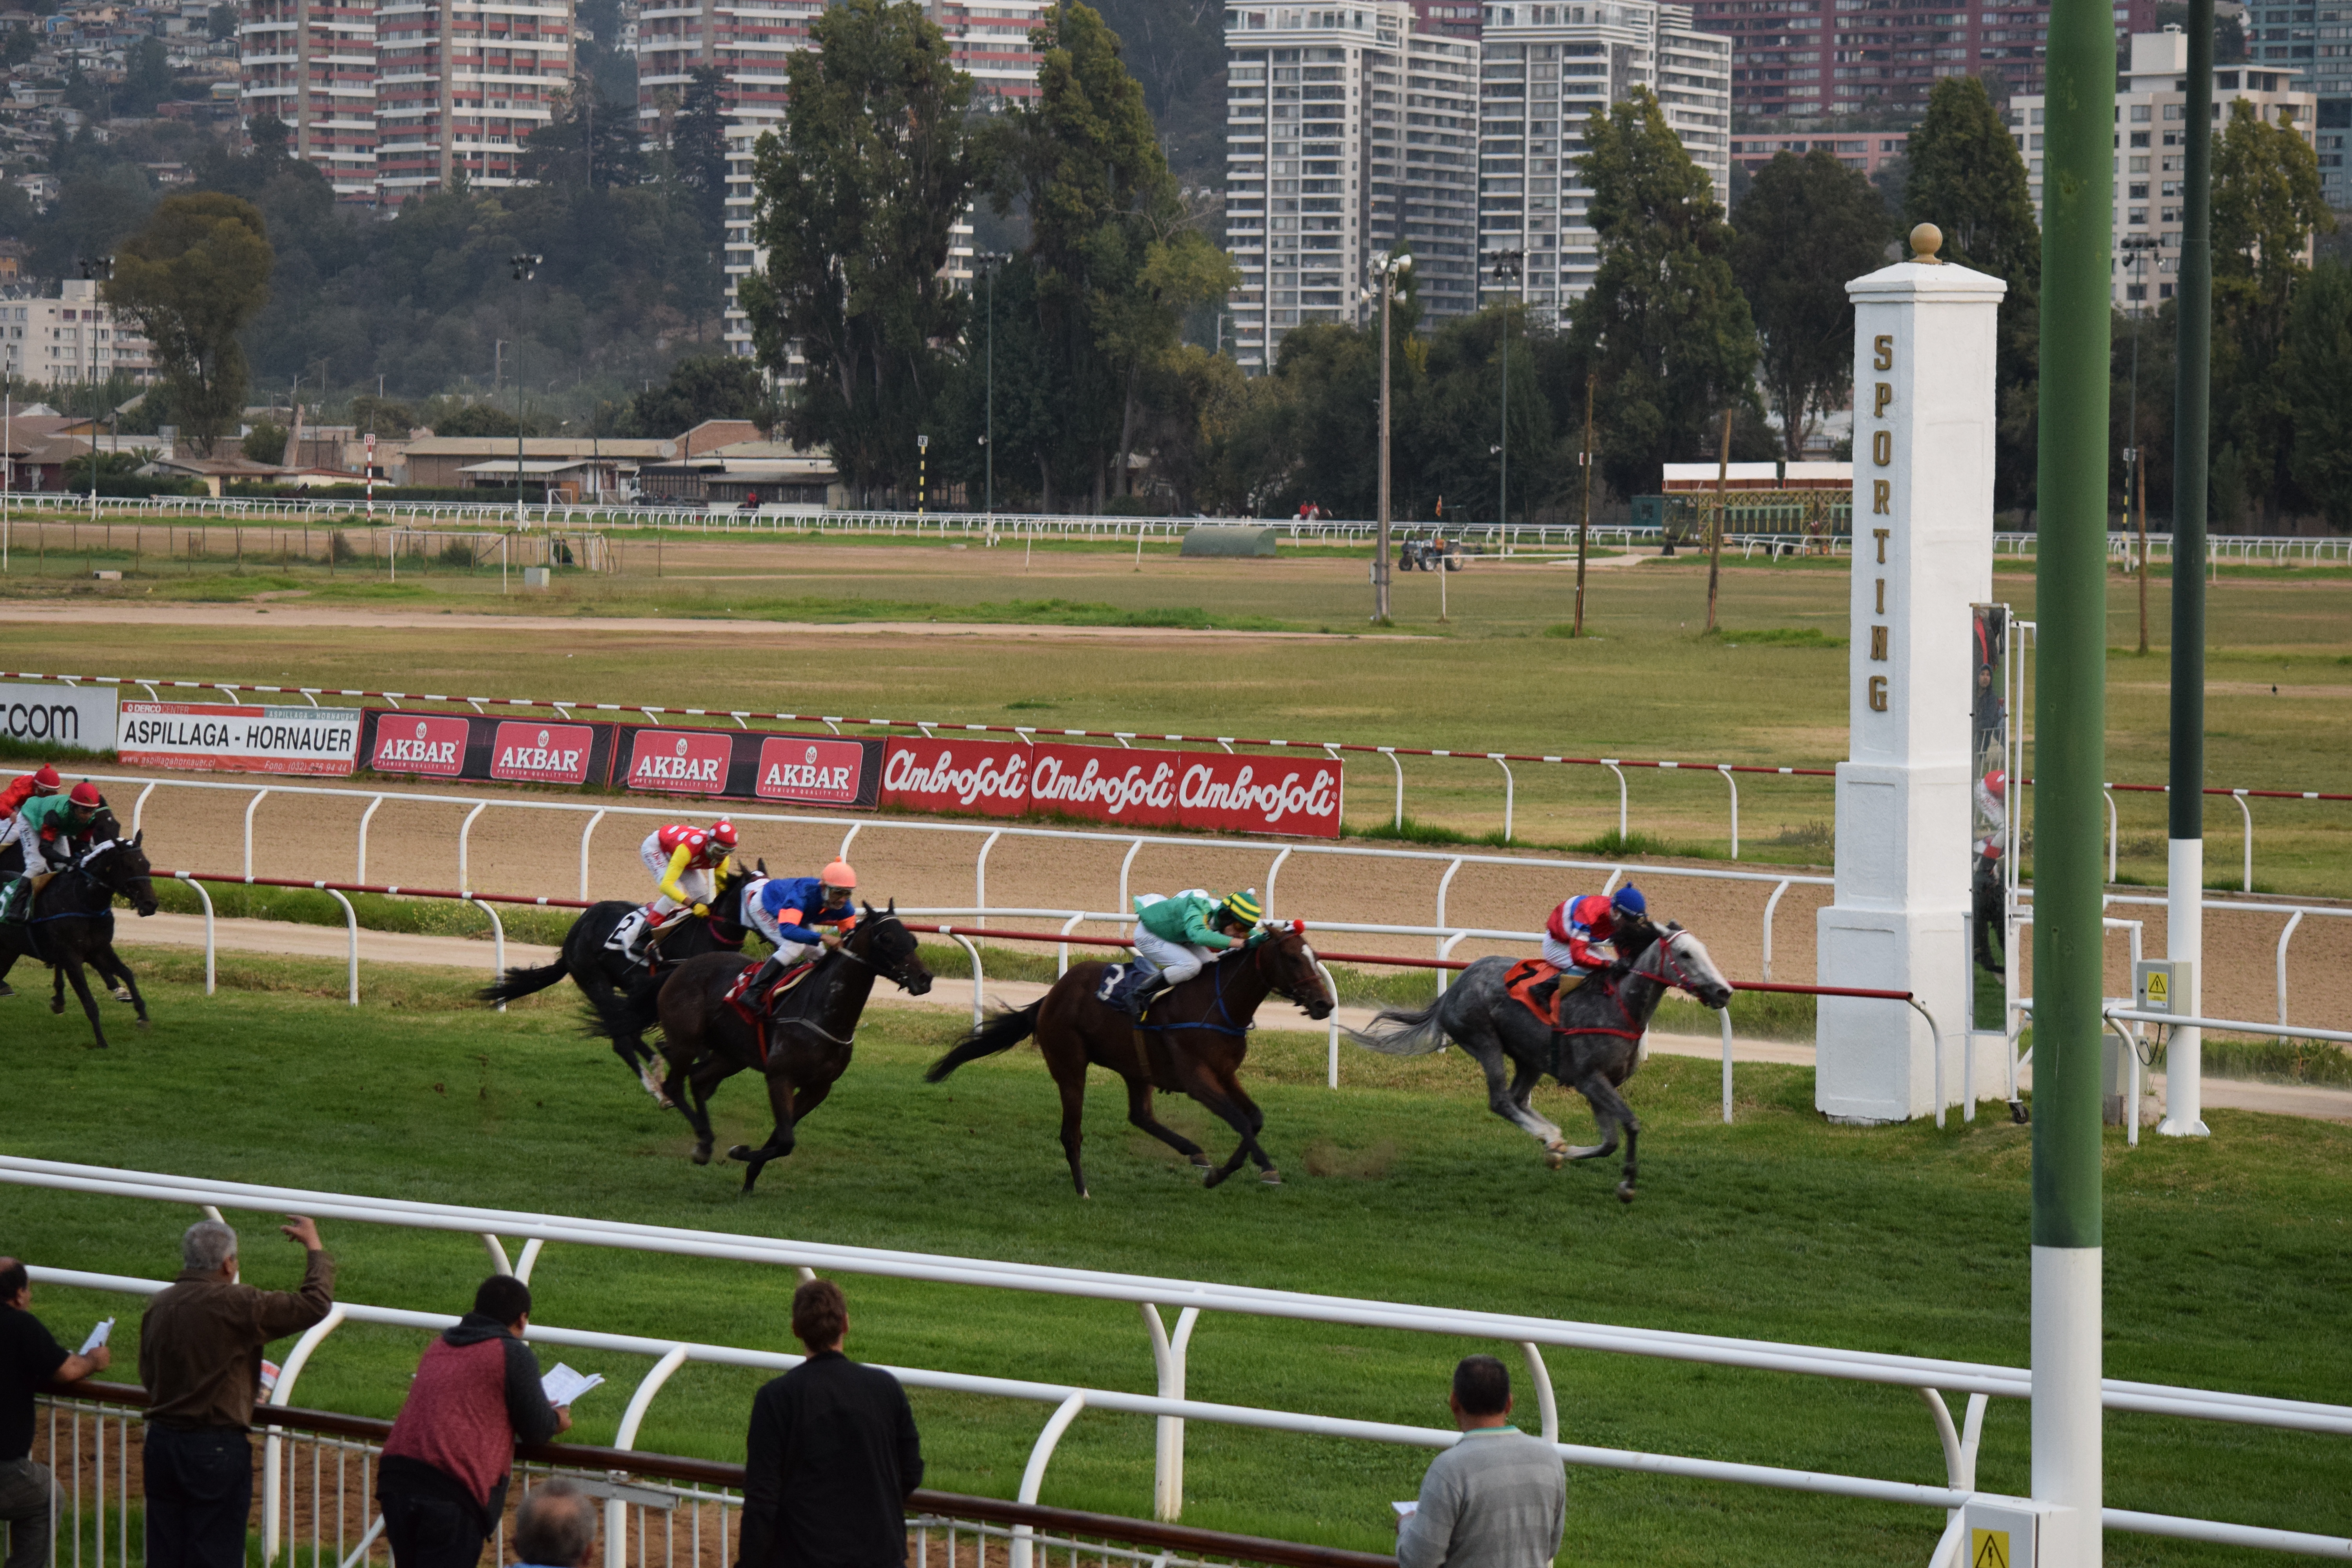 Racehorses Cross The Finish Line At Valparaiso Sporting Racetrack In Chile Prominent Horse Racing